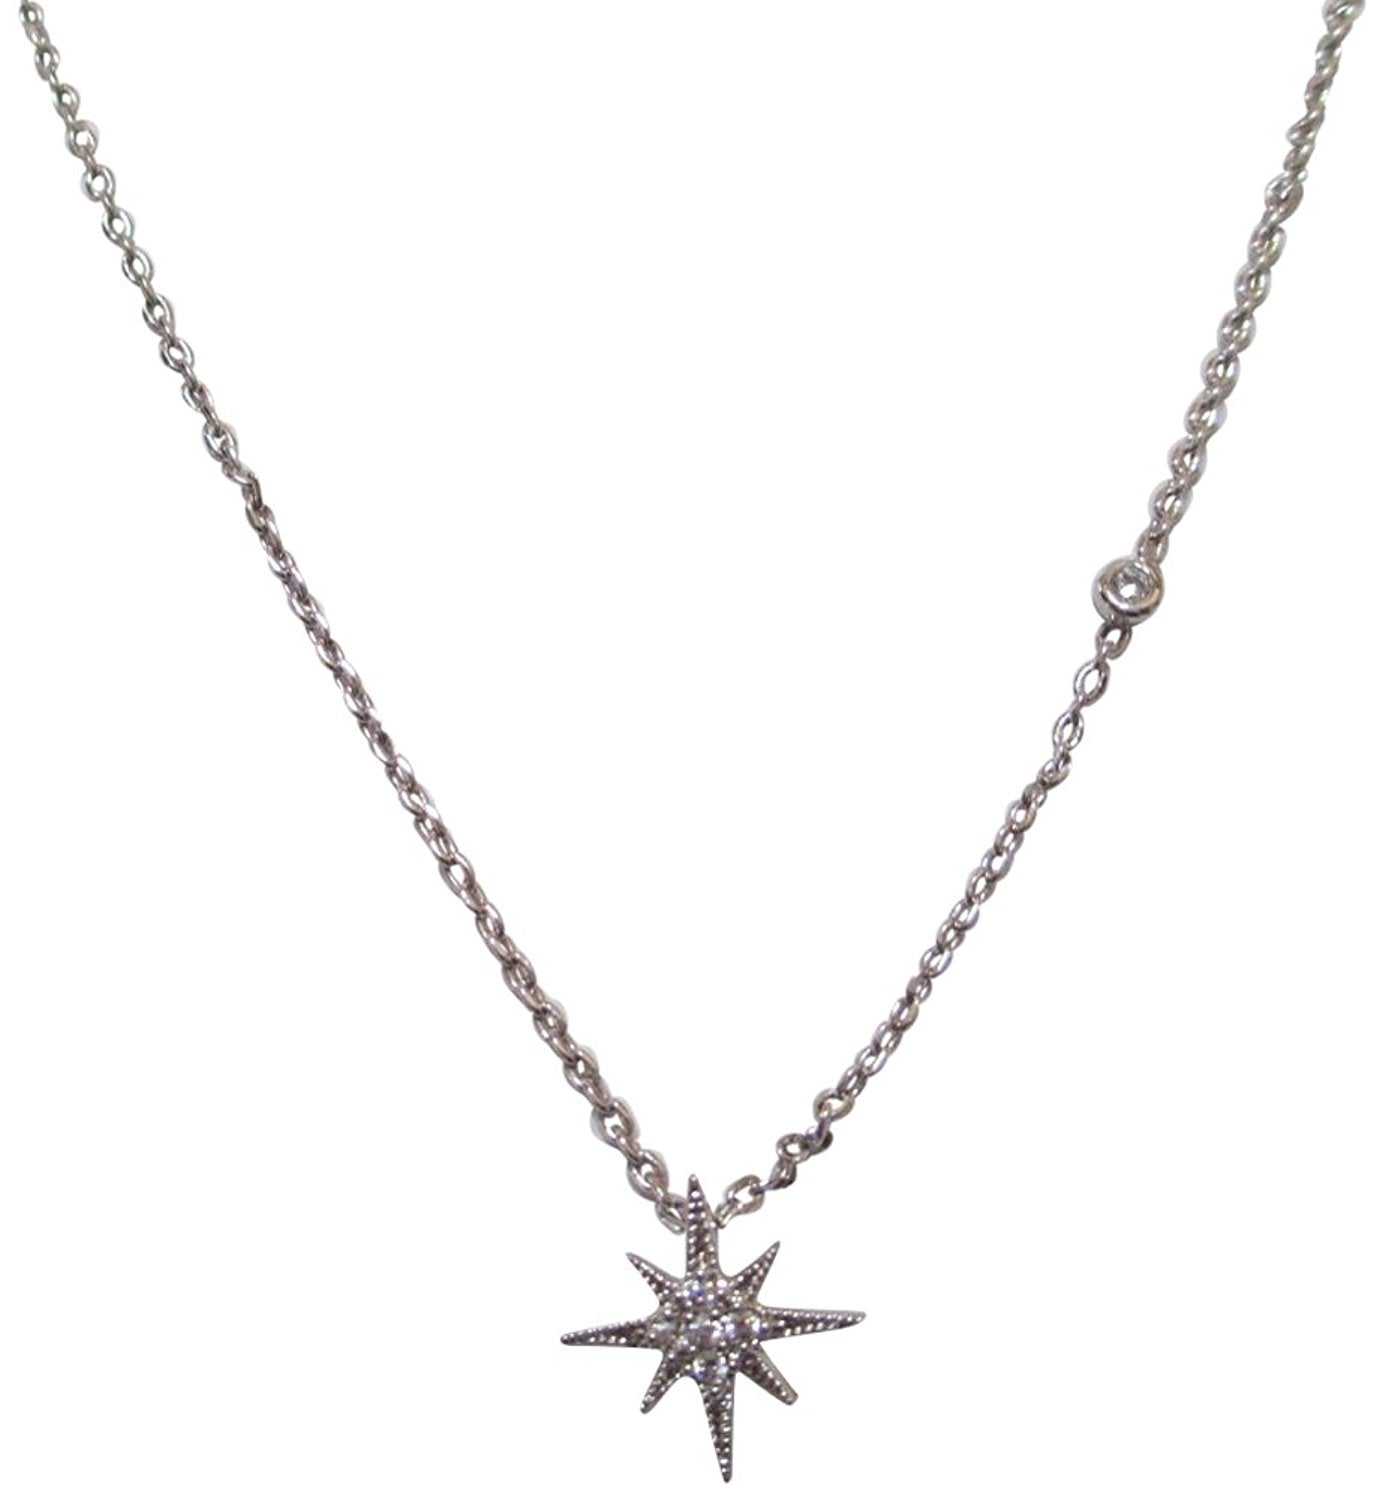 Tai Silver Plated Starburst Dainty Necklace